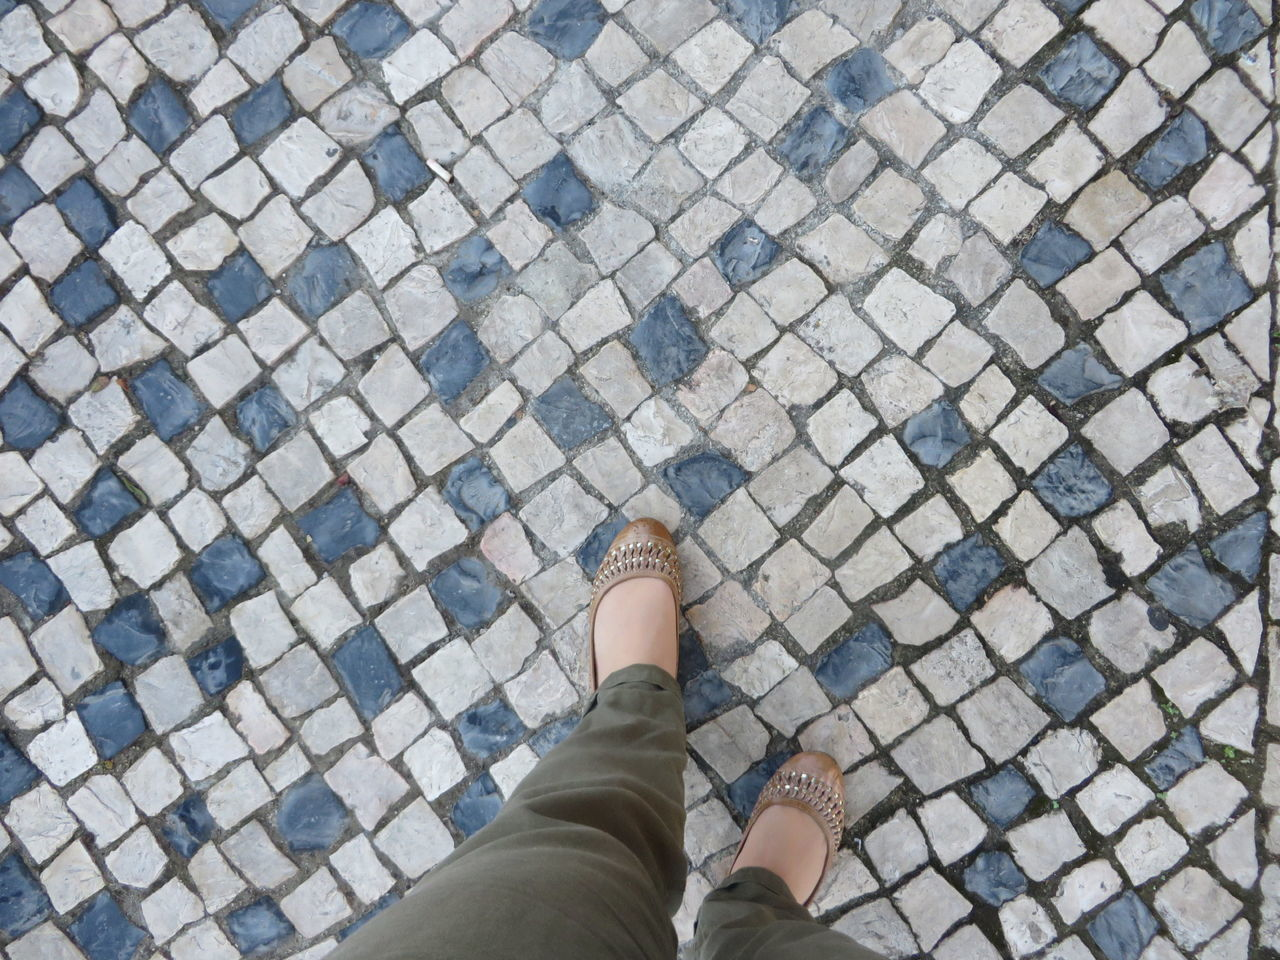 Exploring Lisbon in 15 hours City Break Day Day Trip Human Leg Lisbon - Portugal Low Section Mosaic One Person Outdoors Pattern Pavement Personal Perspective Real People Shoe Sight Seeing Standing Tourism Walking Around